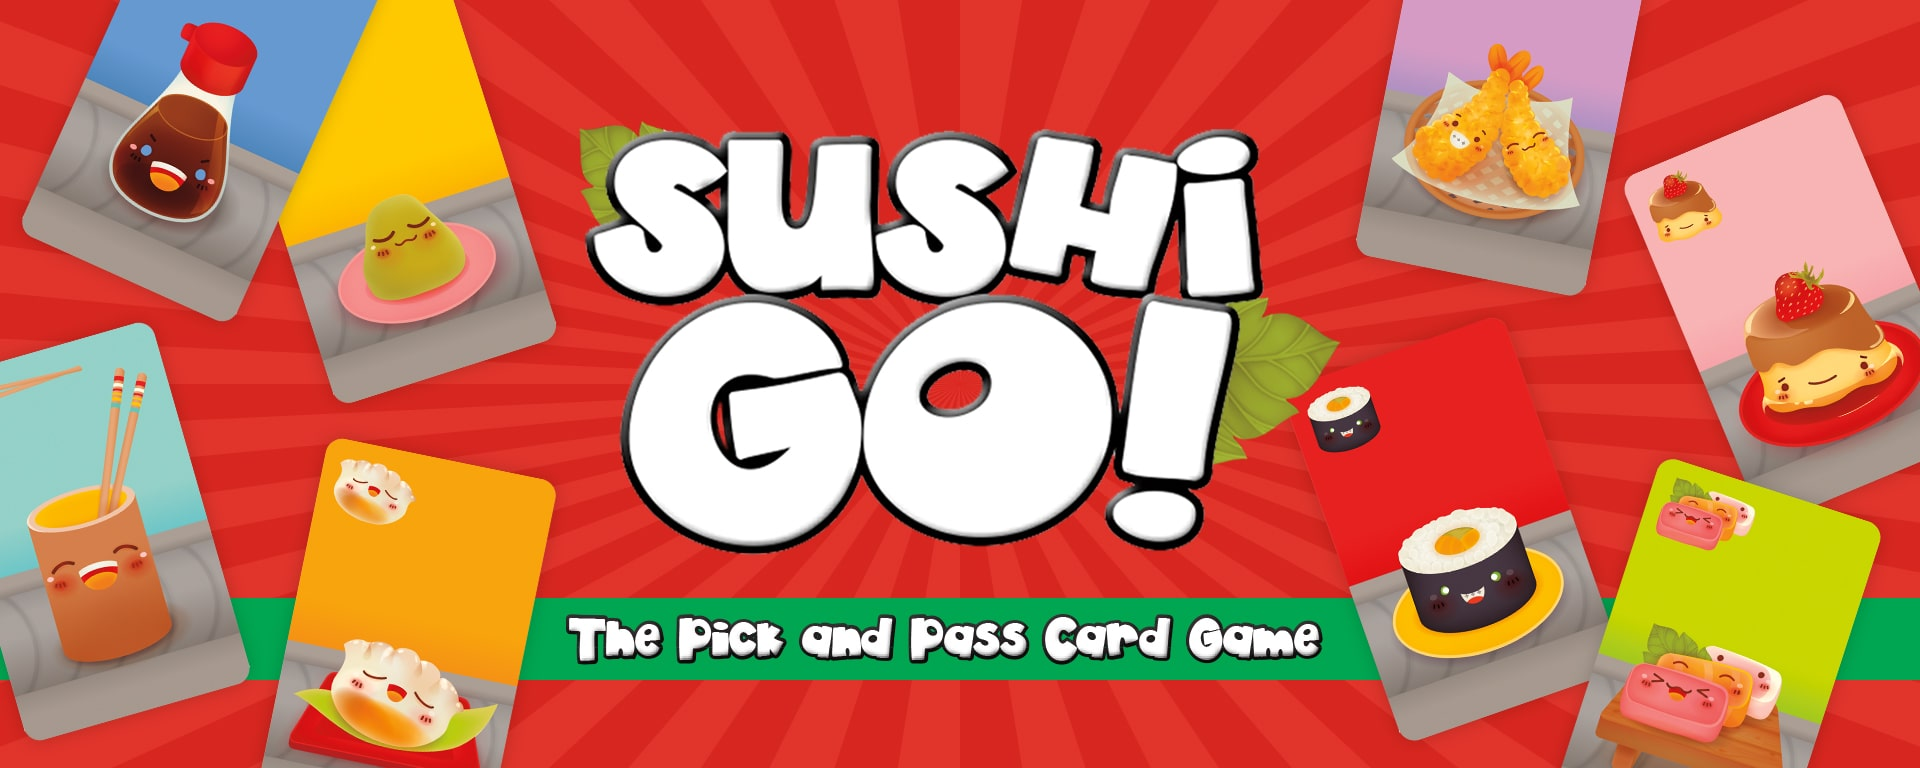 Coiledspring Heroes - Sushi Go!